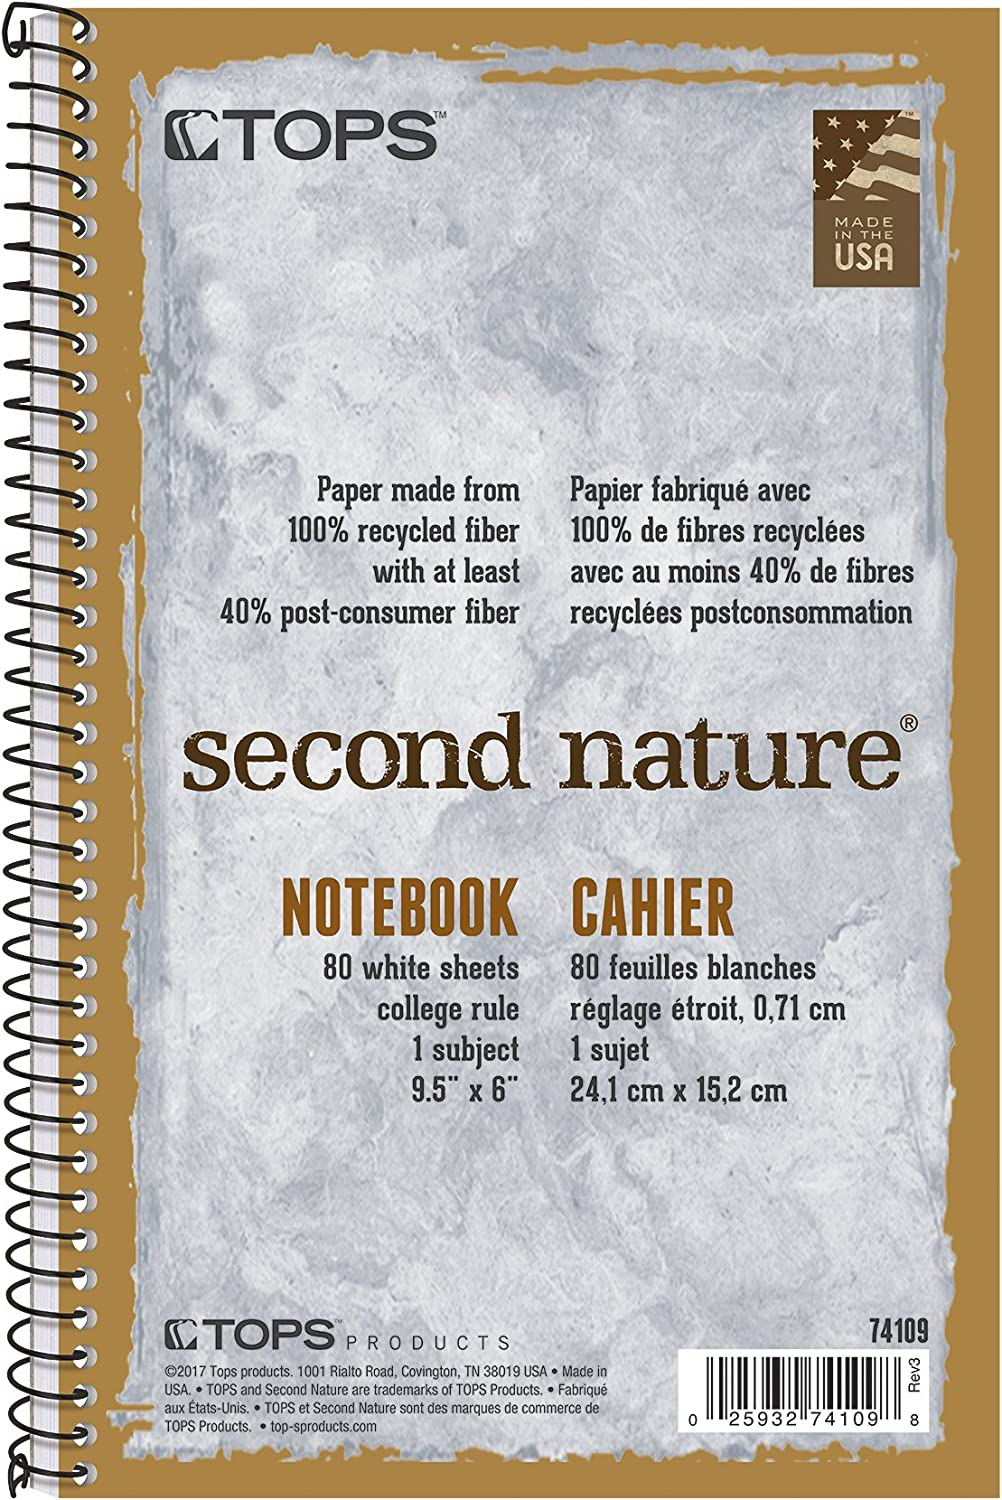 TOPS Second Nature Notebook, 9.5 x 6 Inch, College Ruled, 100% Recycled, 80 Sheets, Grey (74109)